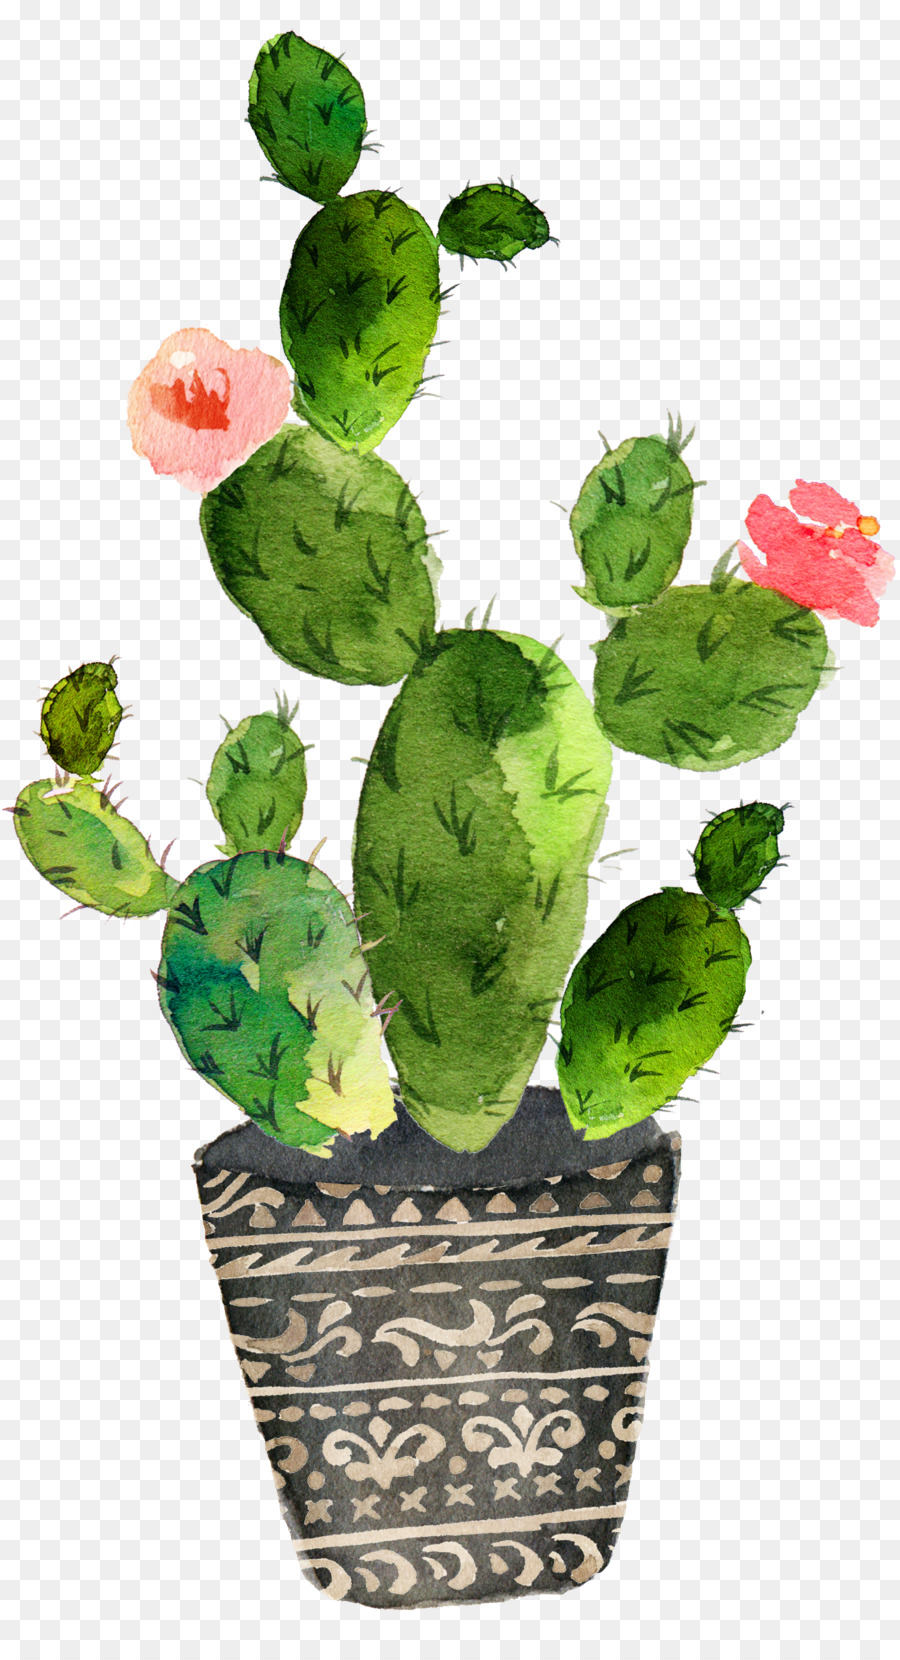 900x1660 Cactaceae Watercolor Painting Art Drawing